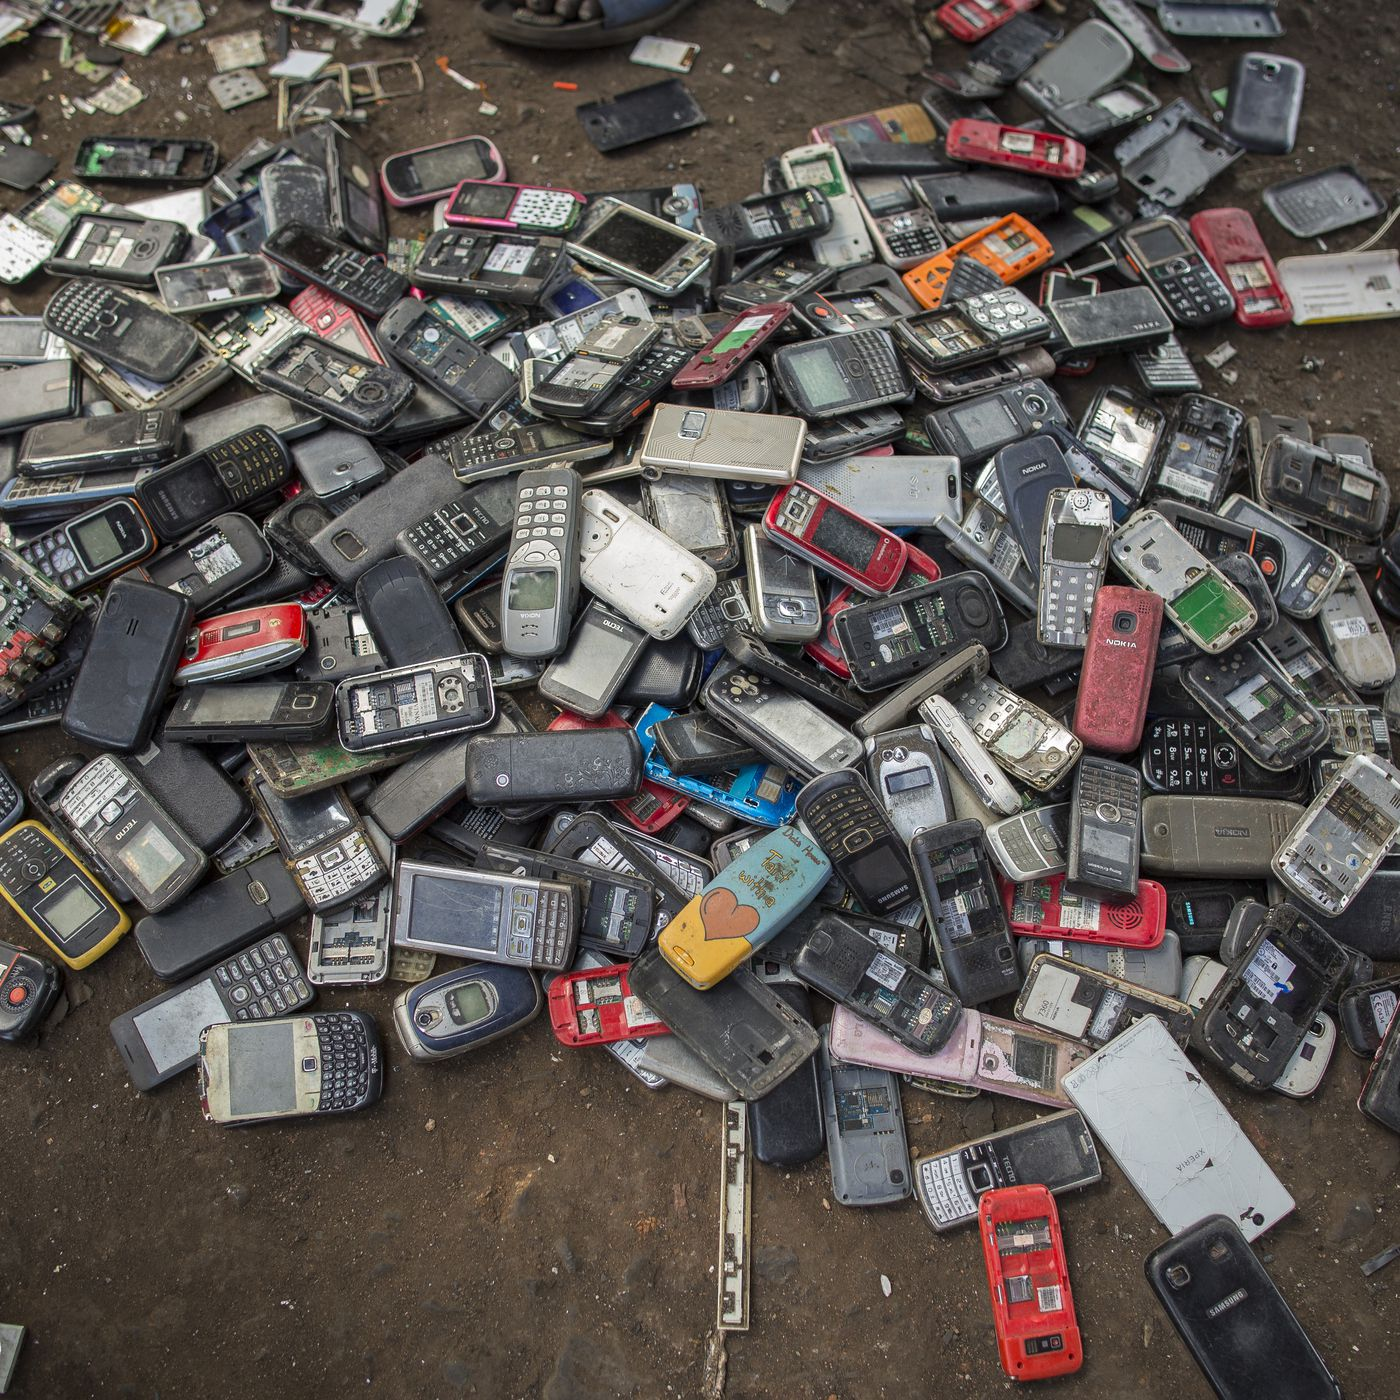 Smartphone Recycling This Is Where Your Iphone Goes When You Throw American Hardware Mfg Mobile Home Electrical Cords It Away Recode